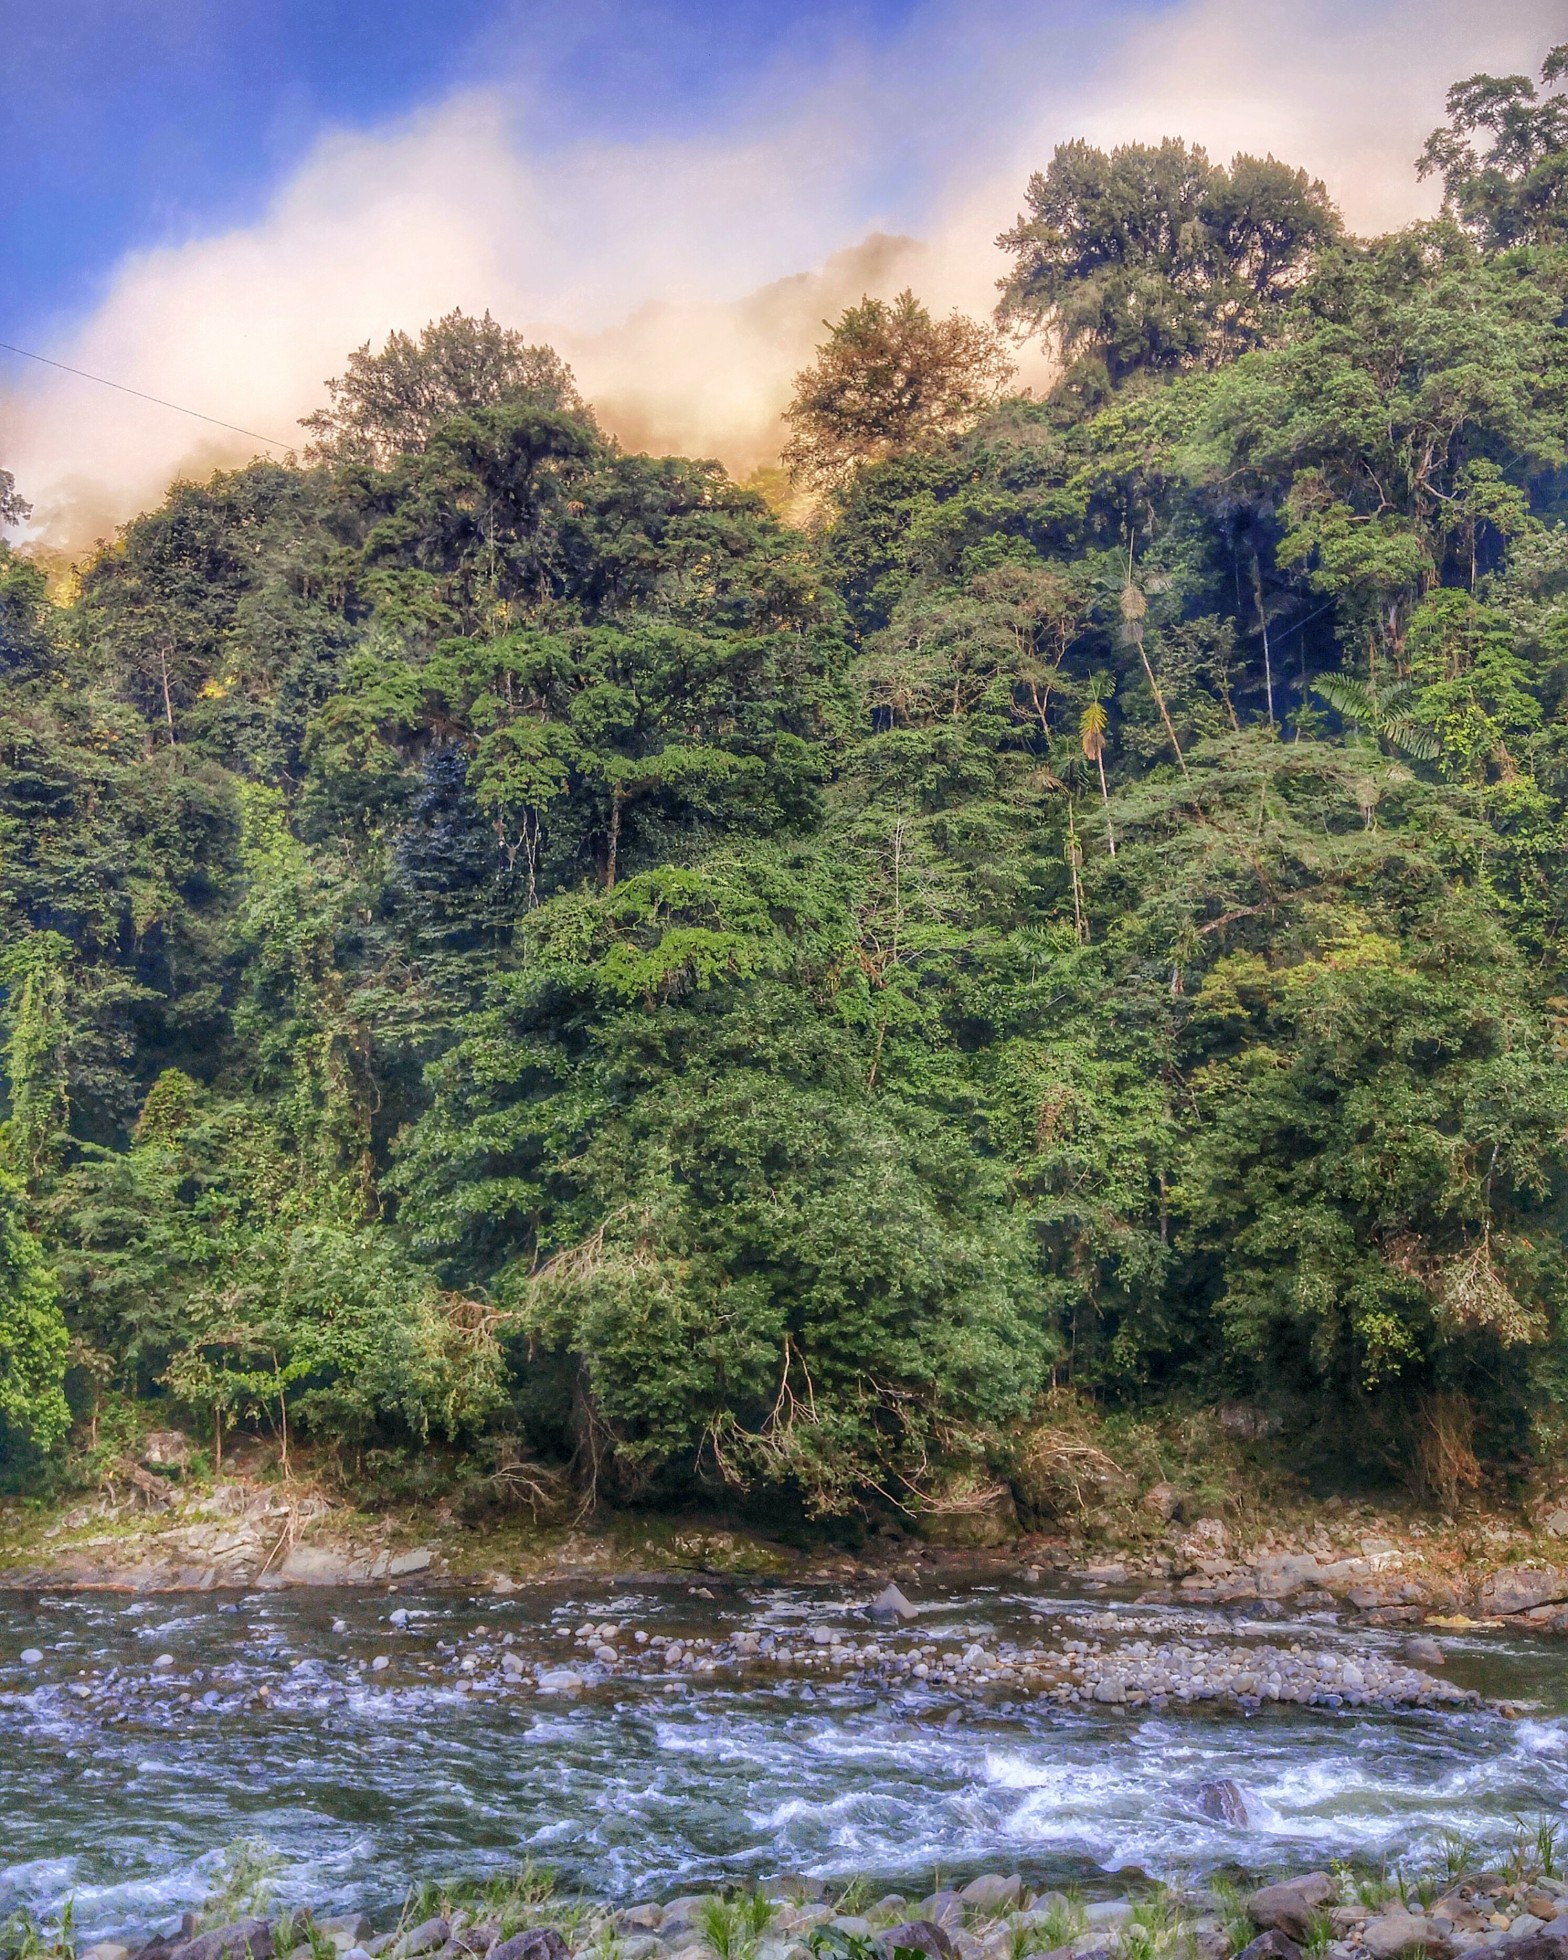 Costa Rica - Pacuare River - whitewater rafting